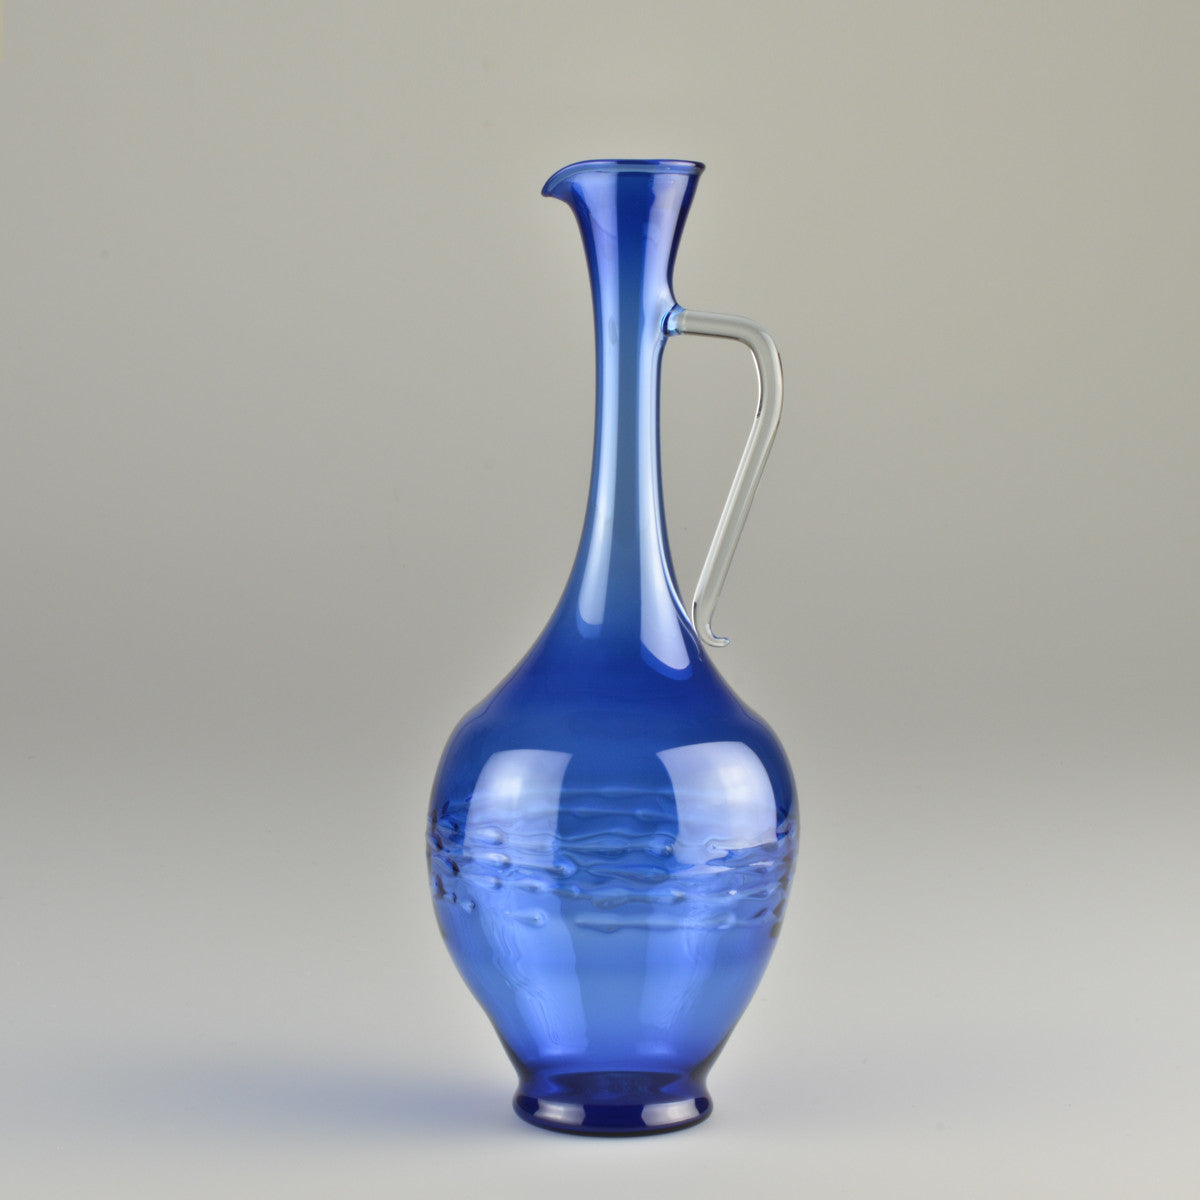 1960's Lauscha Glass Vase with a Handle by Albin Schaedel